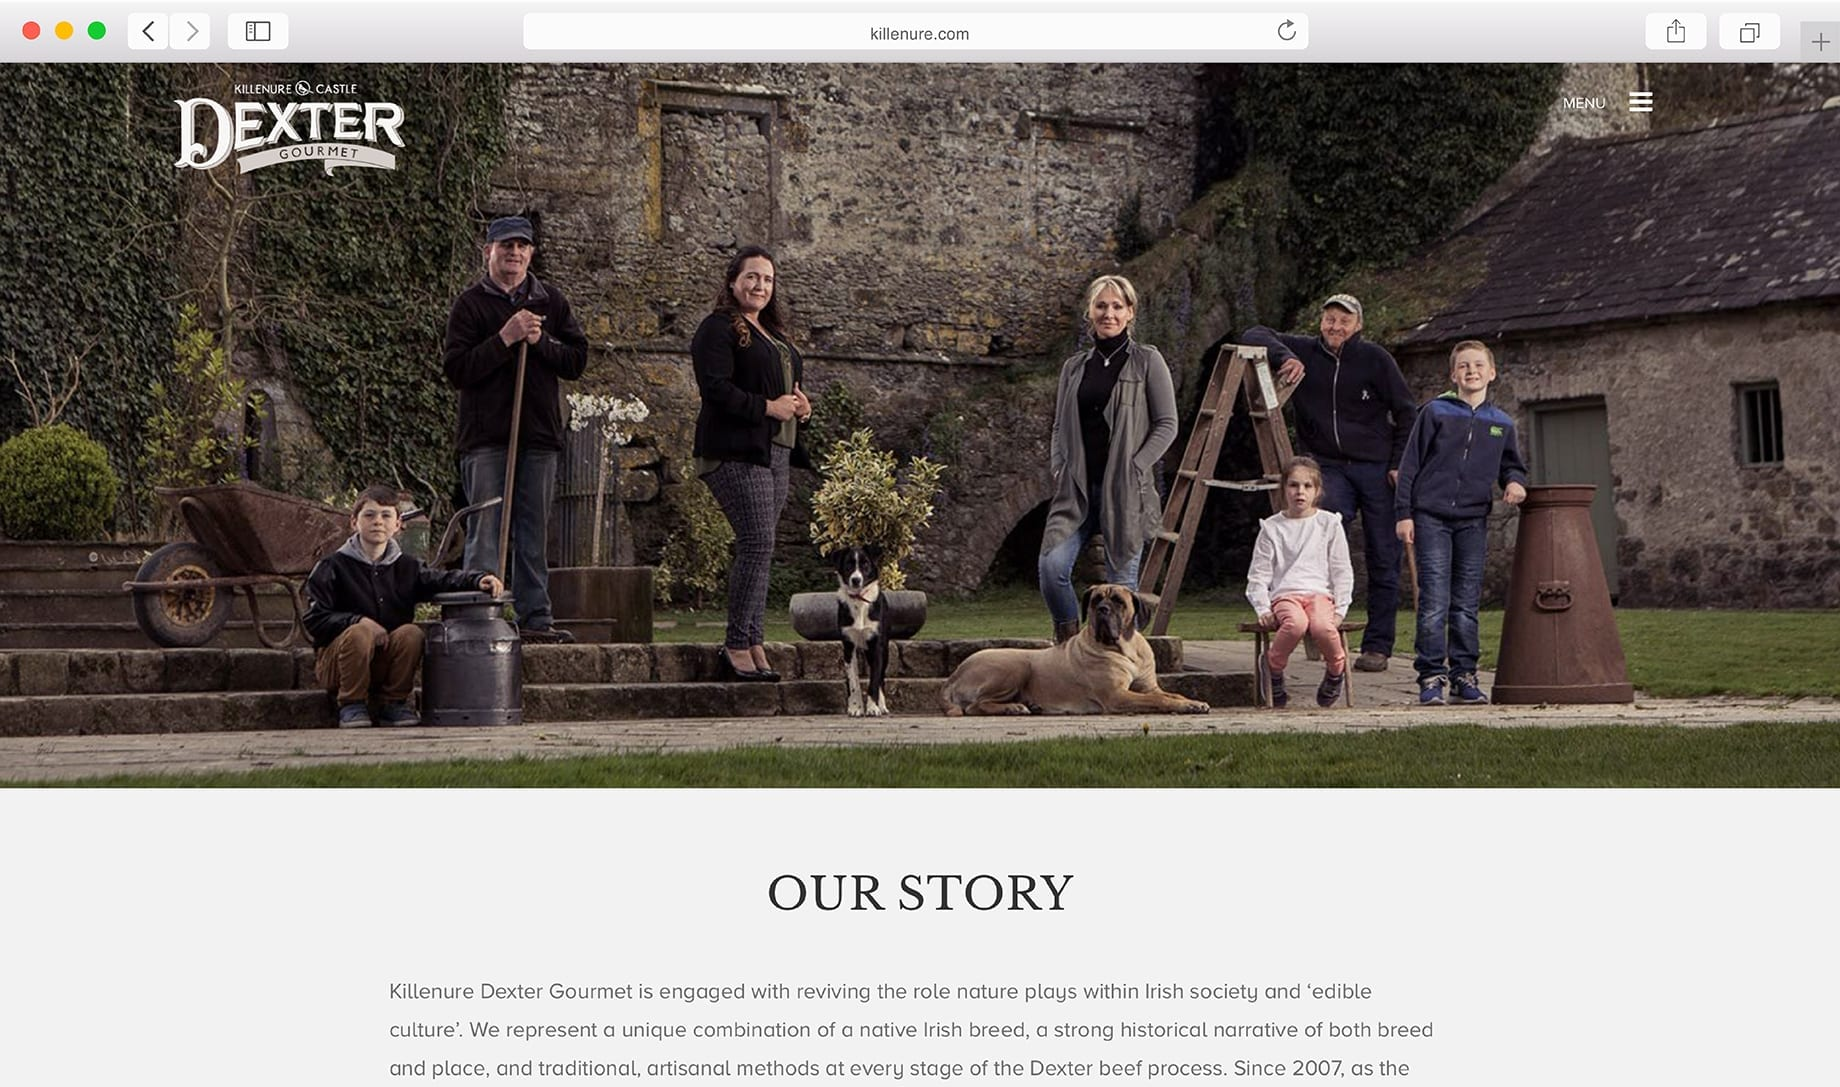 Killenure Website Screenshot 1